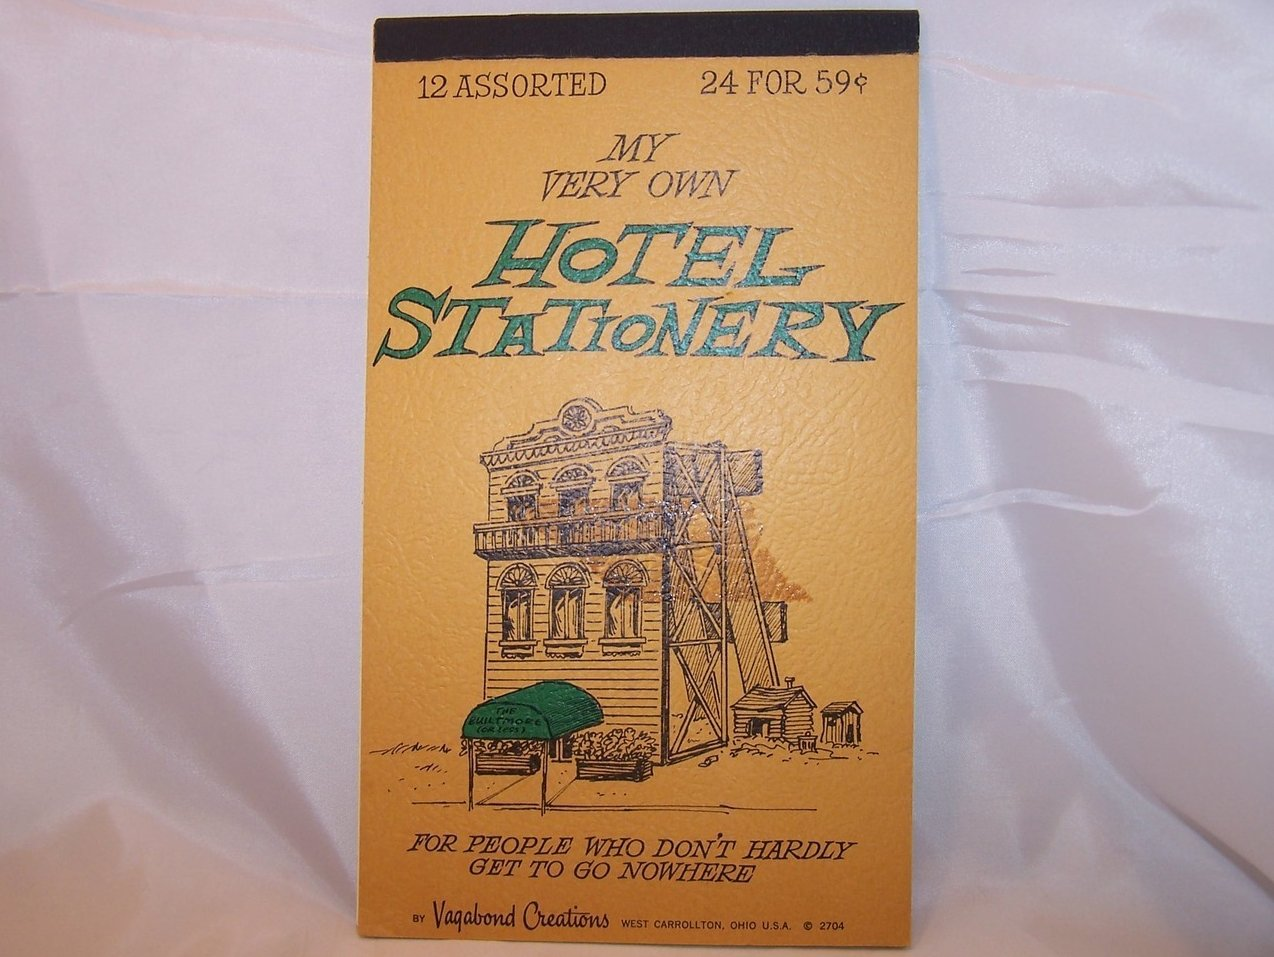 My Very Own Hotel Stationery Note Writing Pad, Vintage 70s